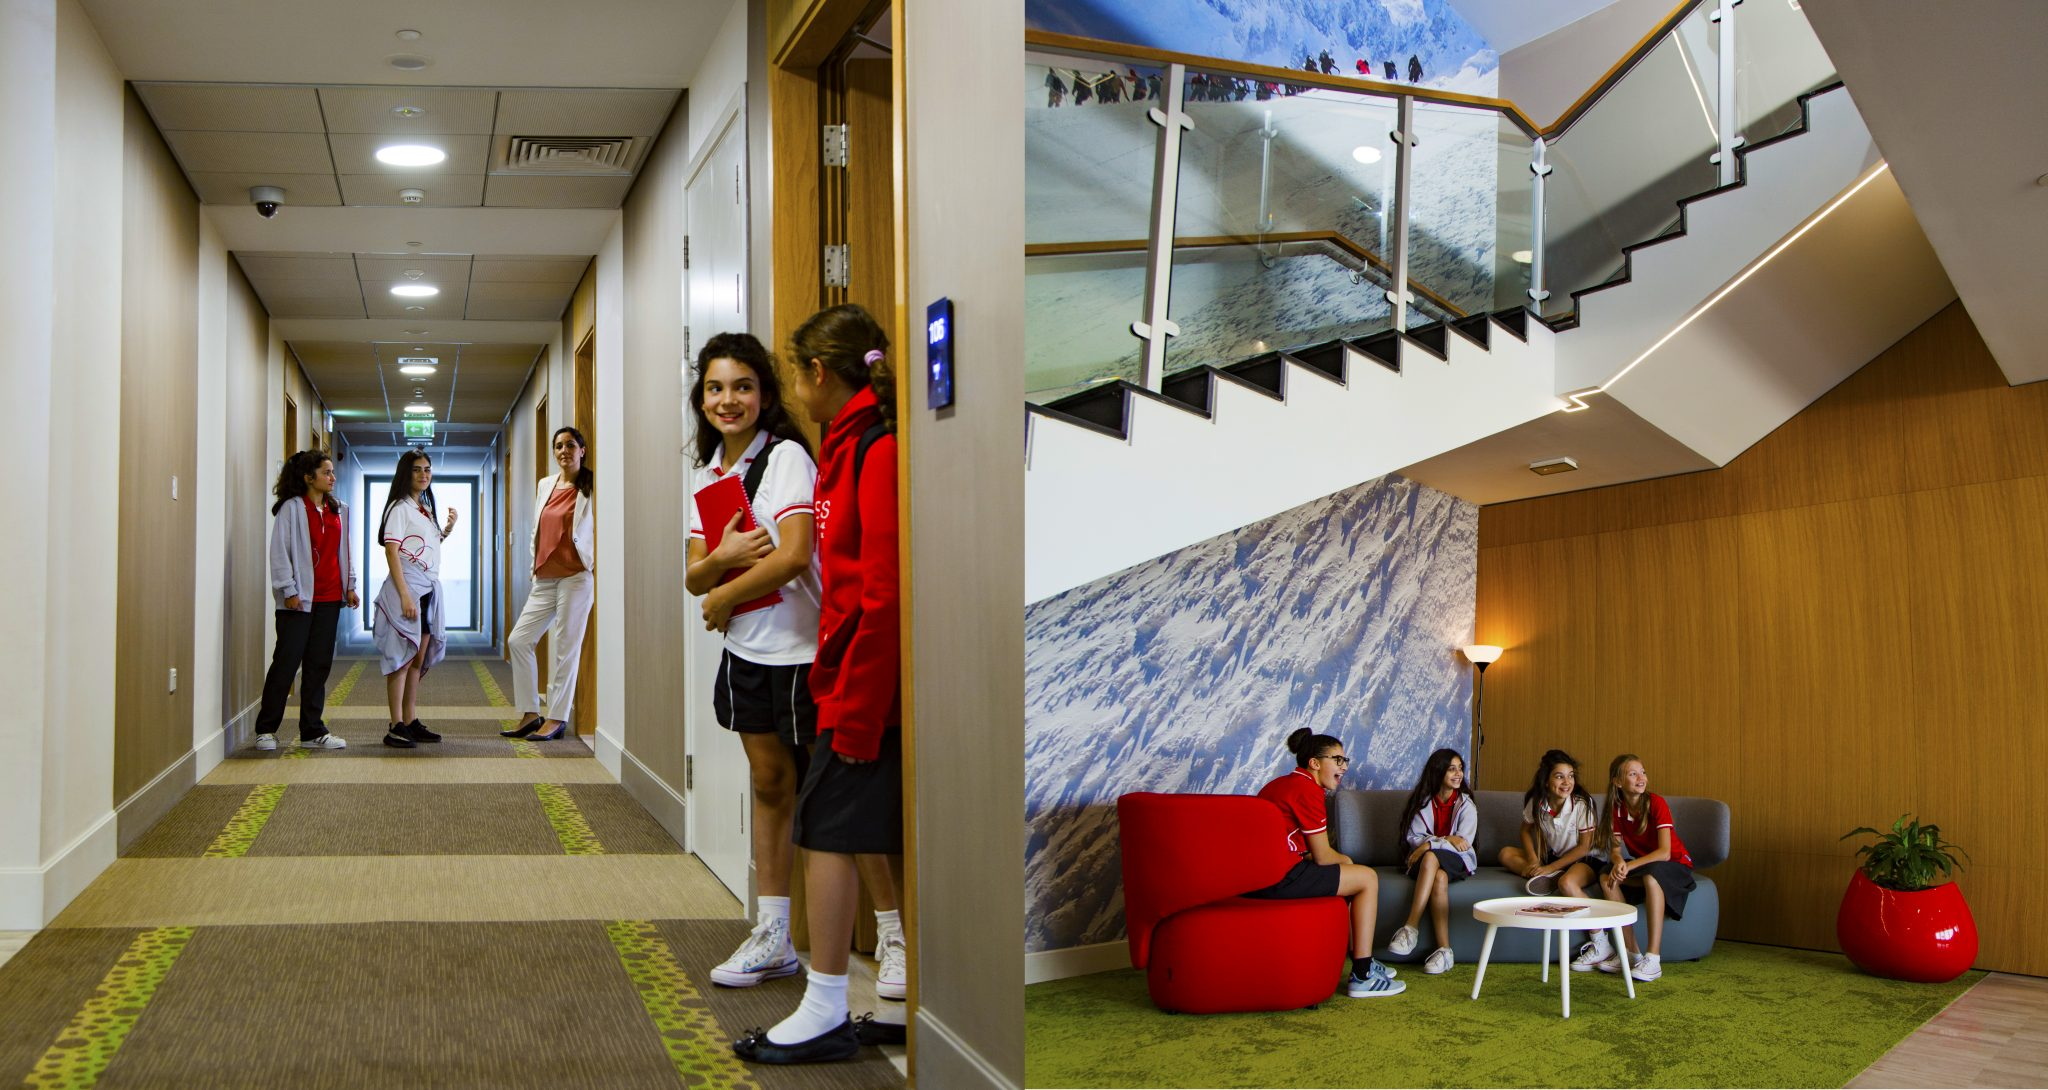 The advantages of American boarding schools